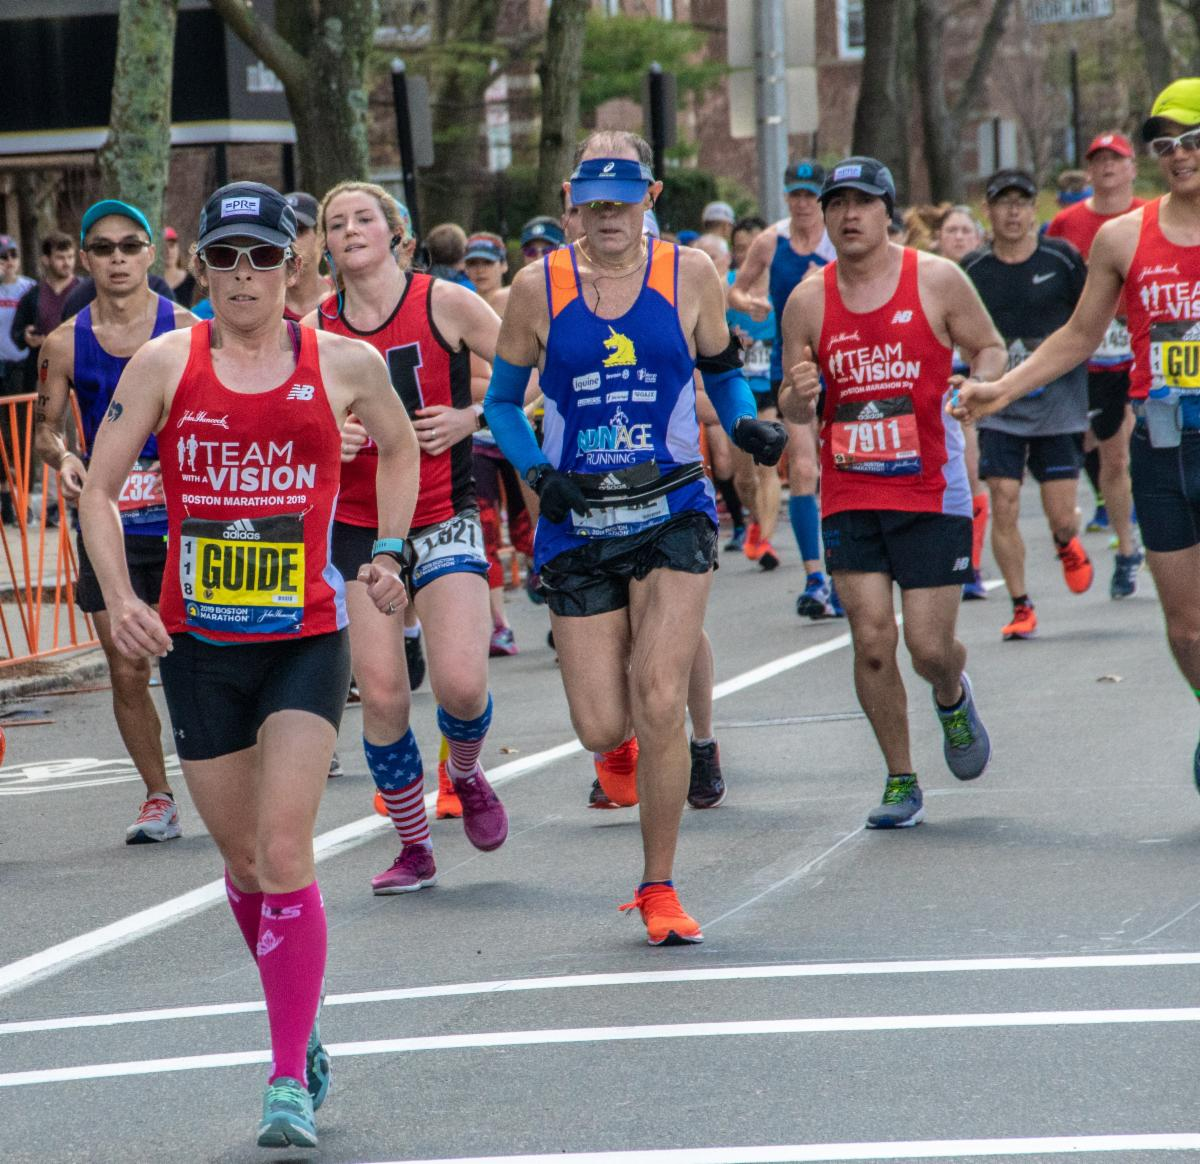 Group of marathon runners including some VI runners and guides